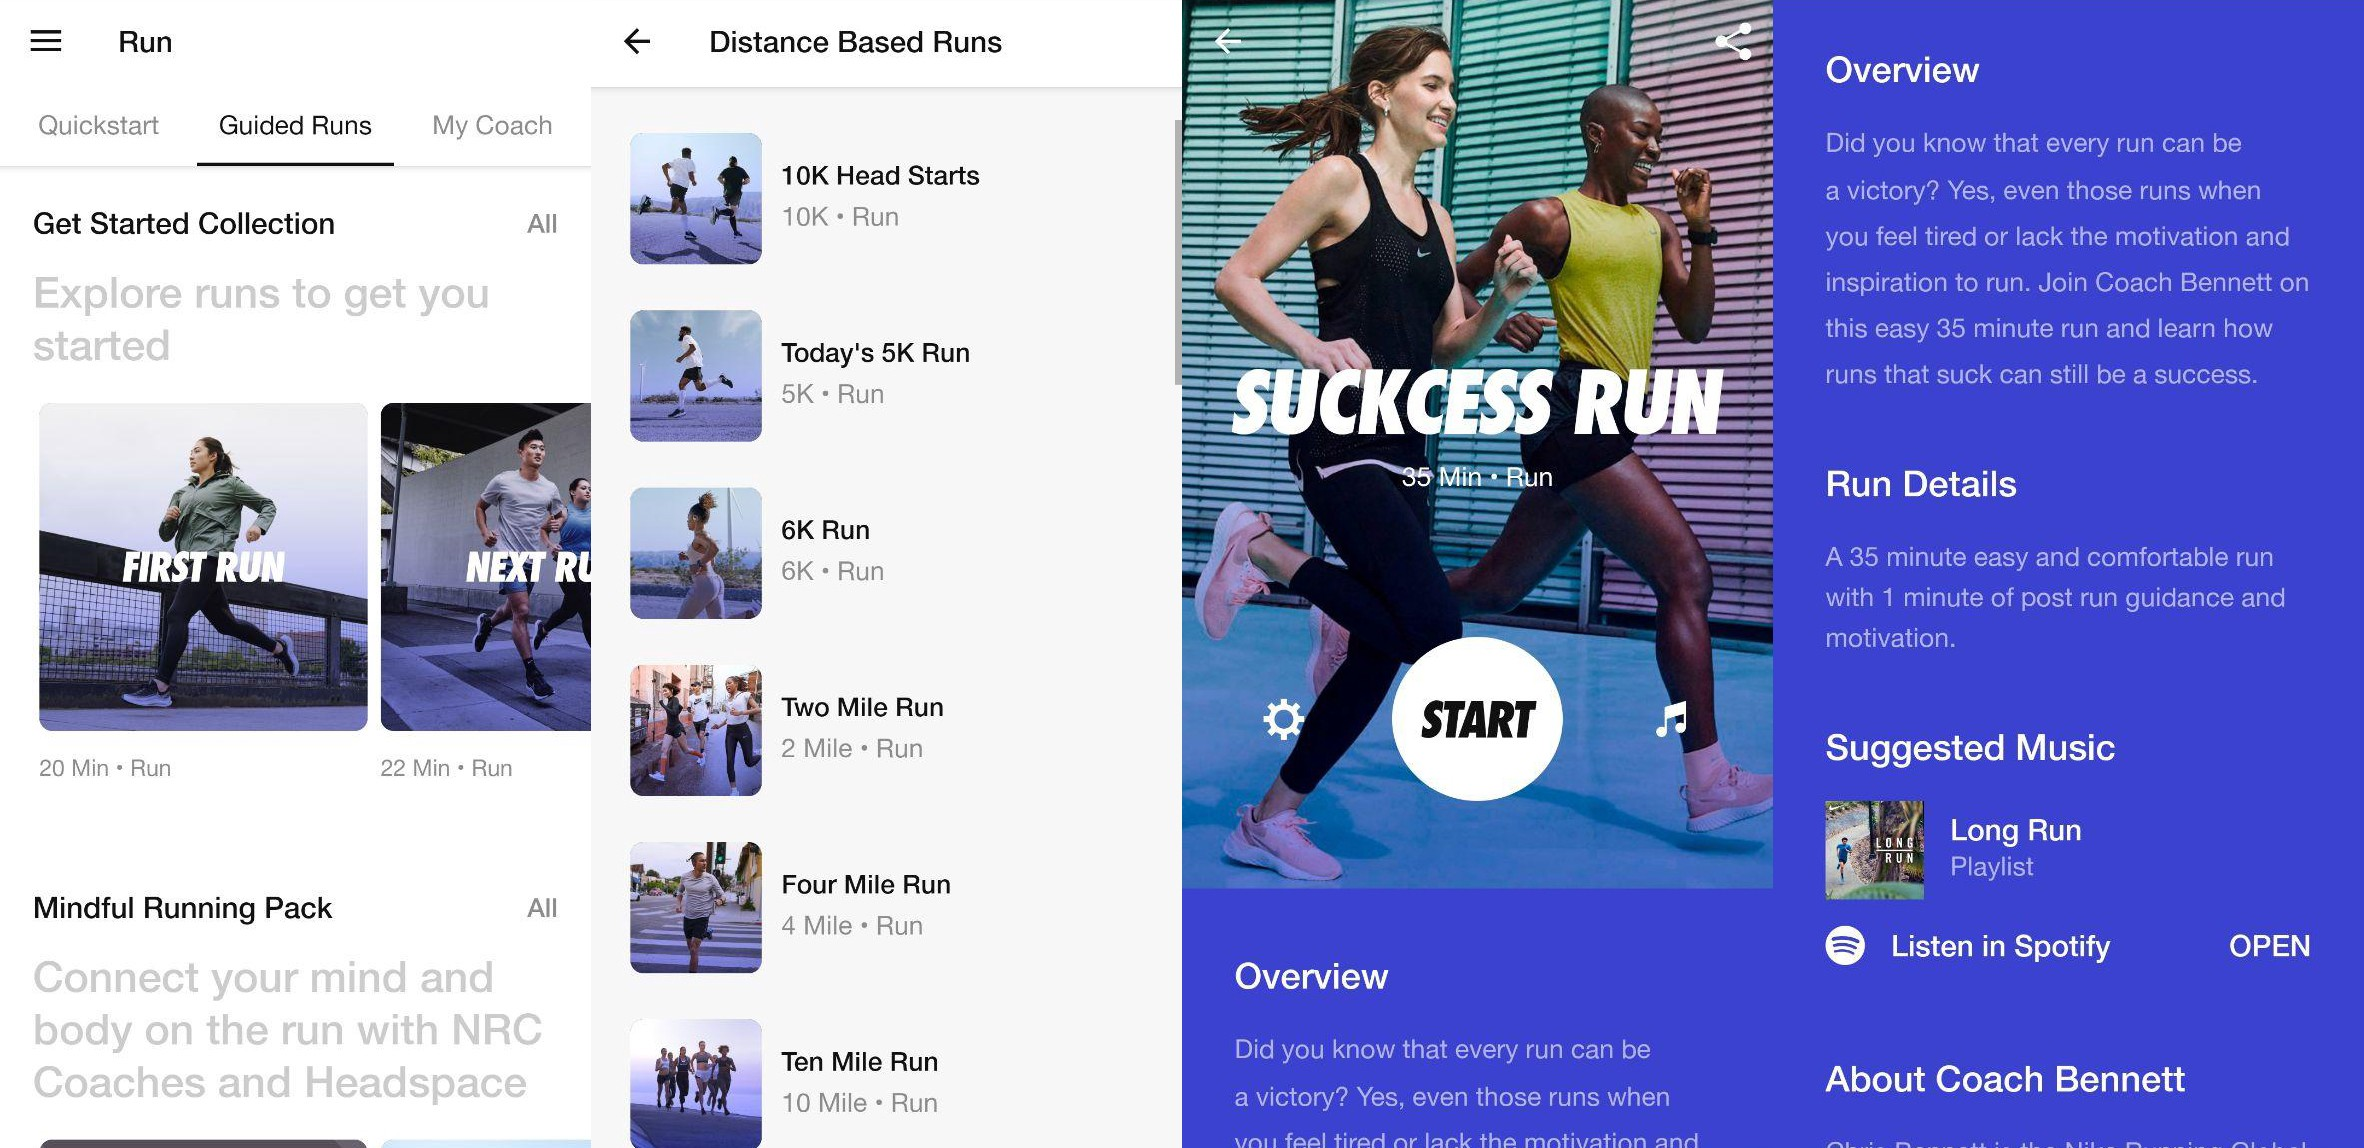 Buque de guerra retirarse Tengo una clase de ingles  Lessons from Nike Running Club's Guided Runs | by Tan Kit Yung | The  Psychology of Everyday Phenomena | Medium